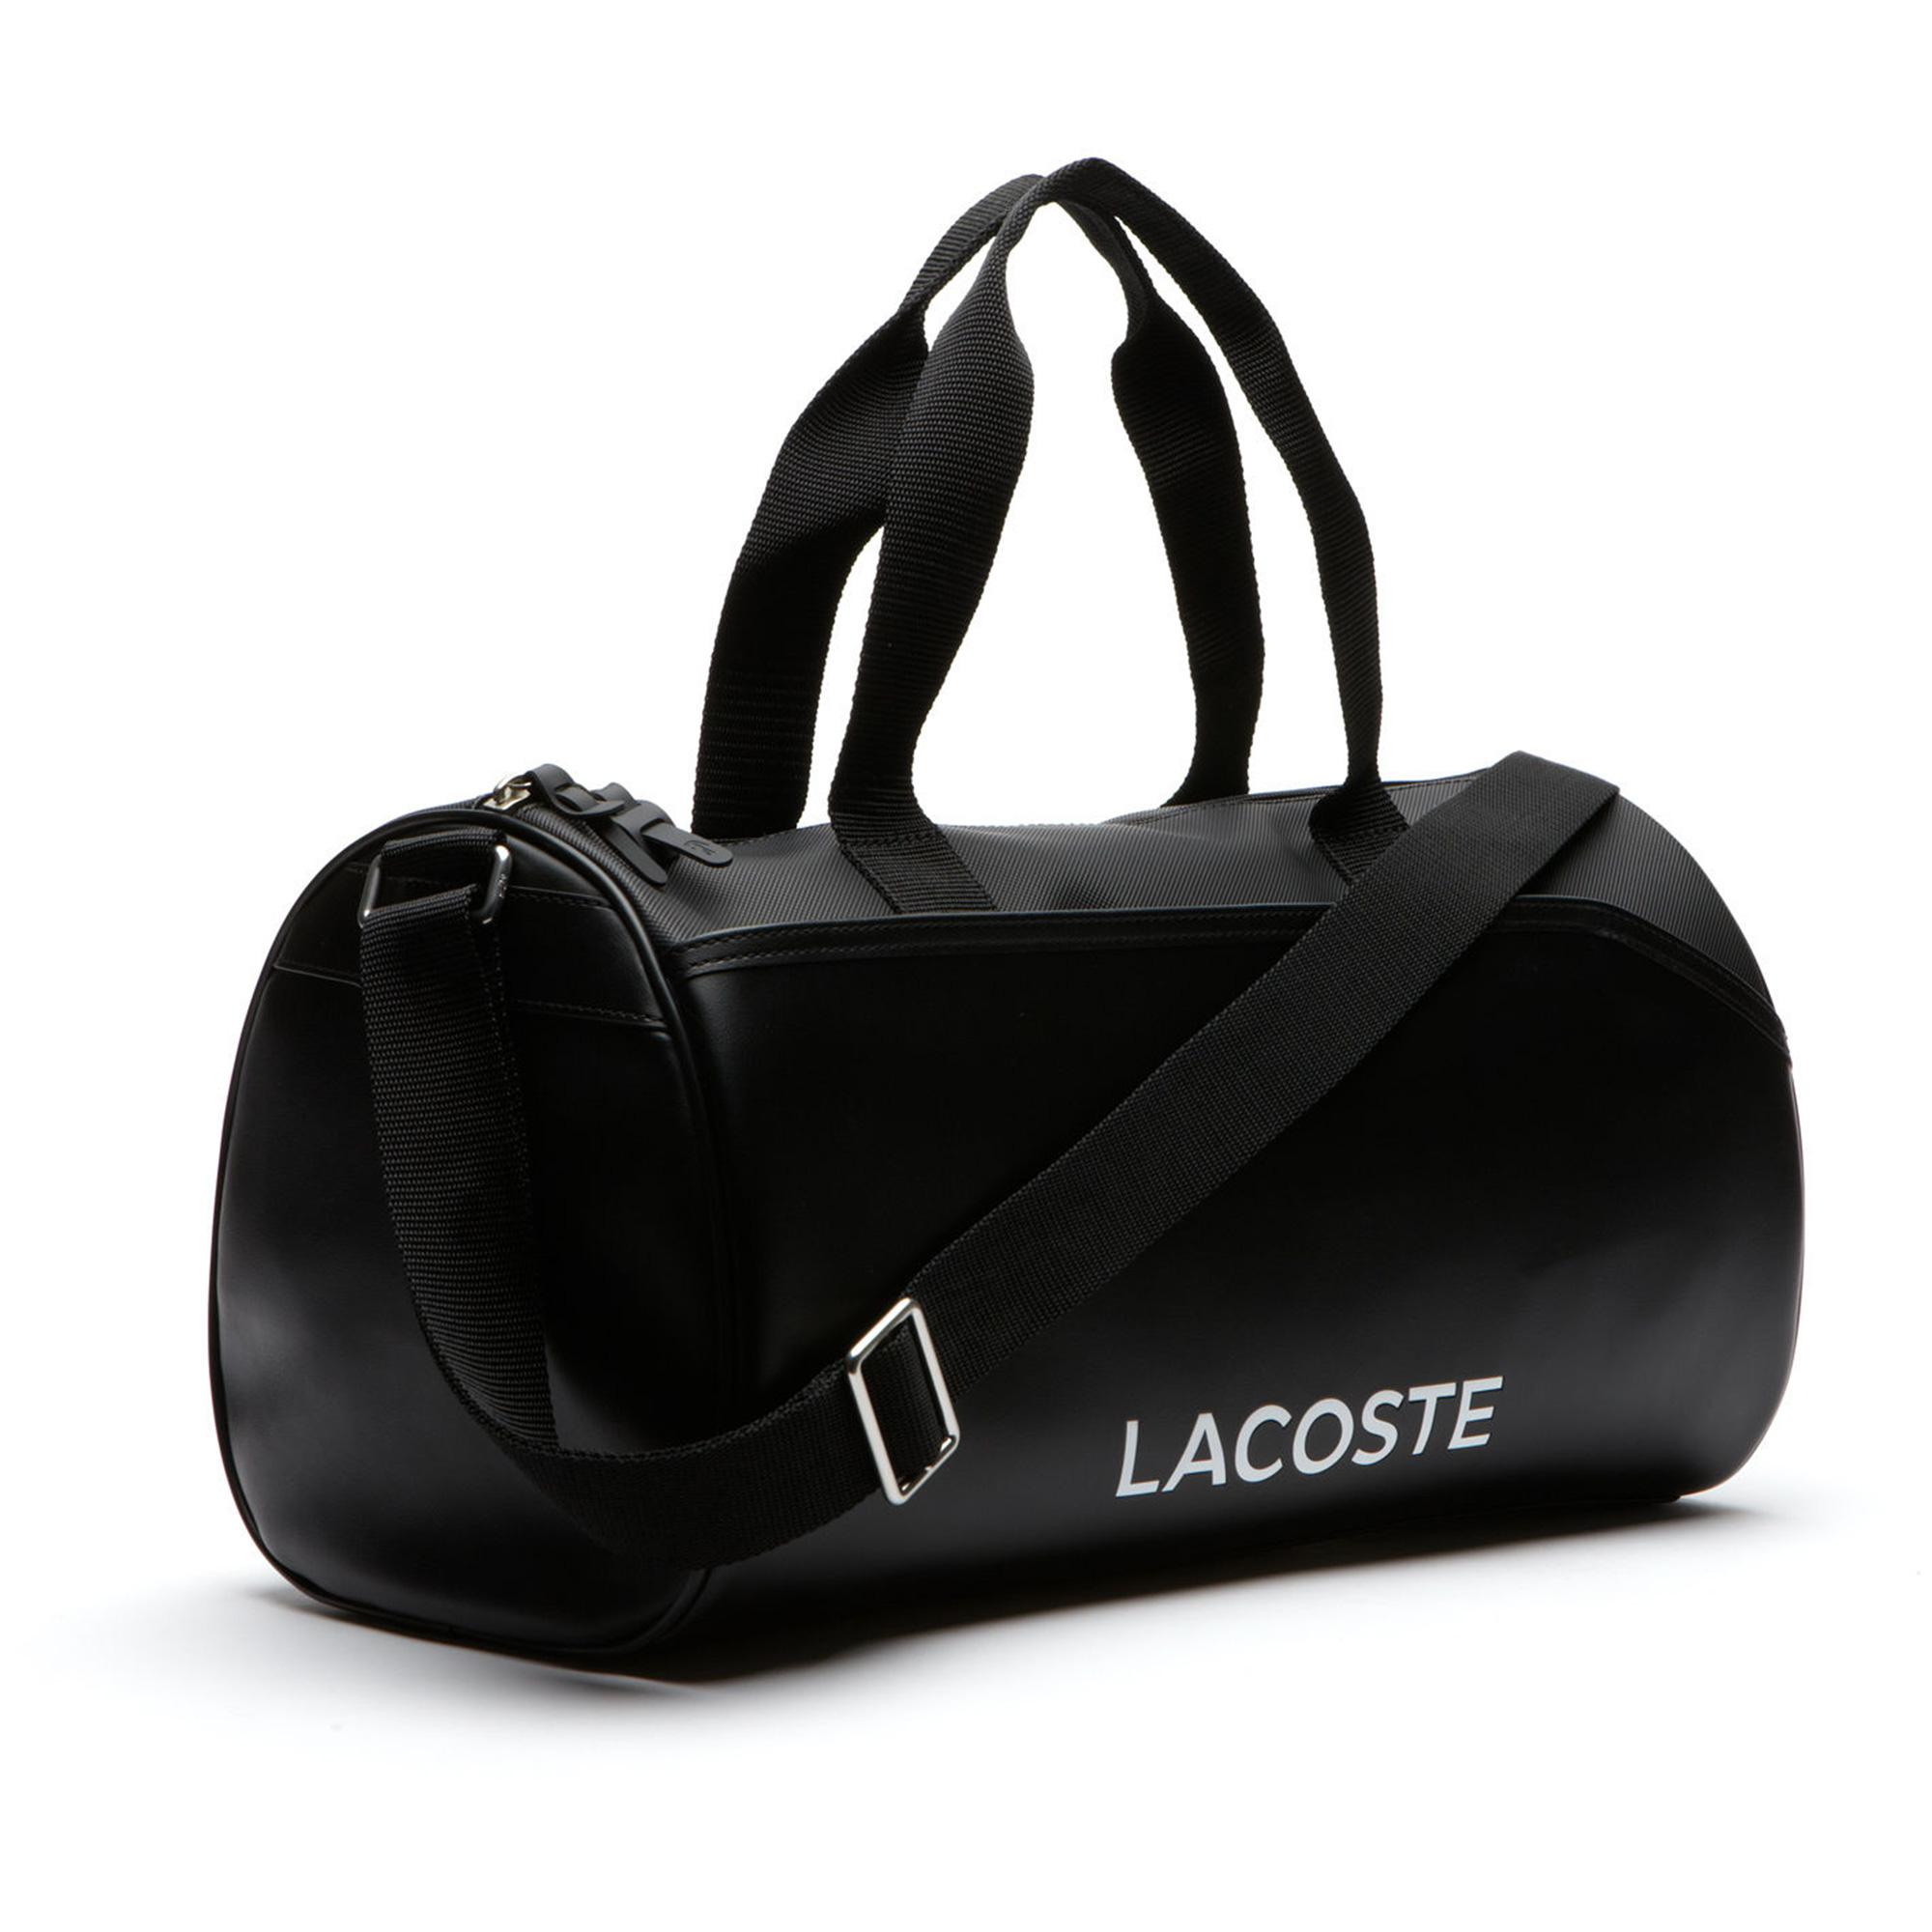 Head Tennis Bag >> Lacoste Sport Ultimatum Roll Bag - Tennisnuts.com